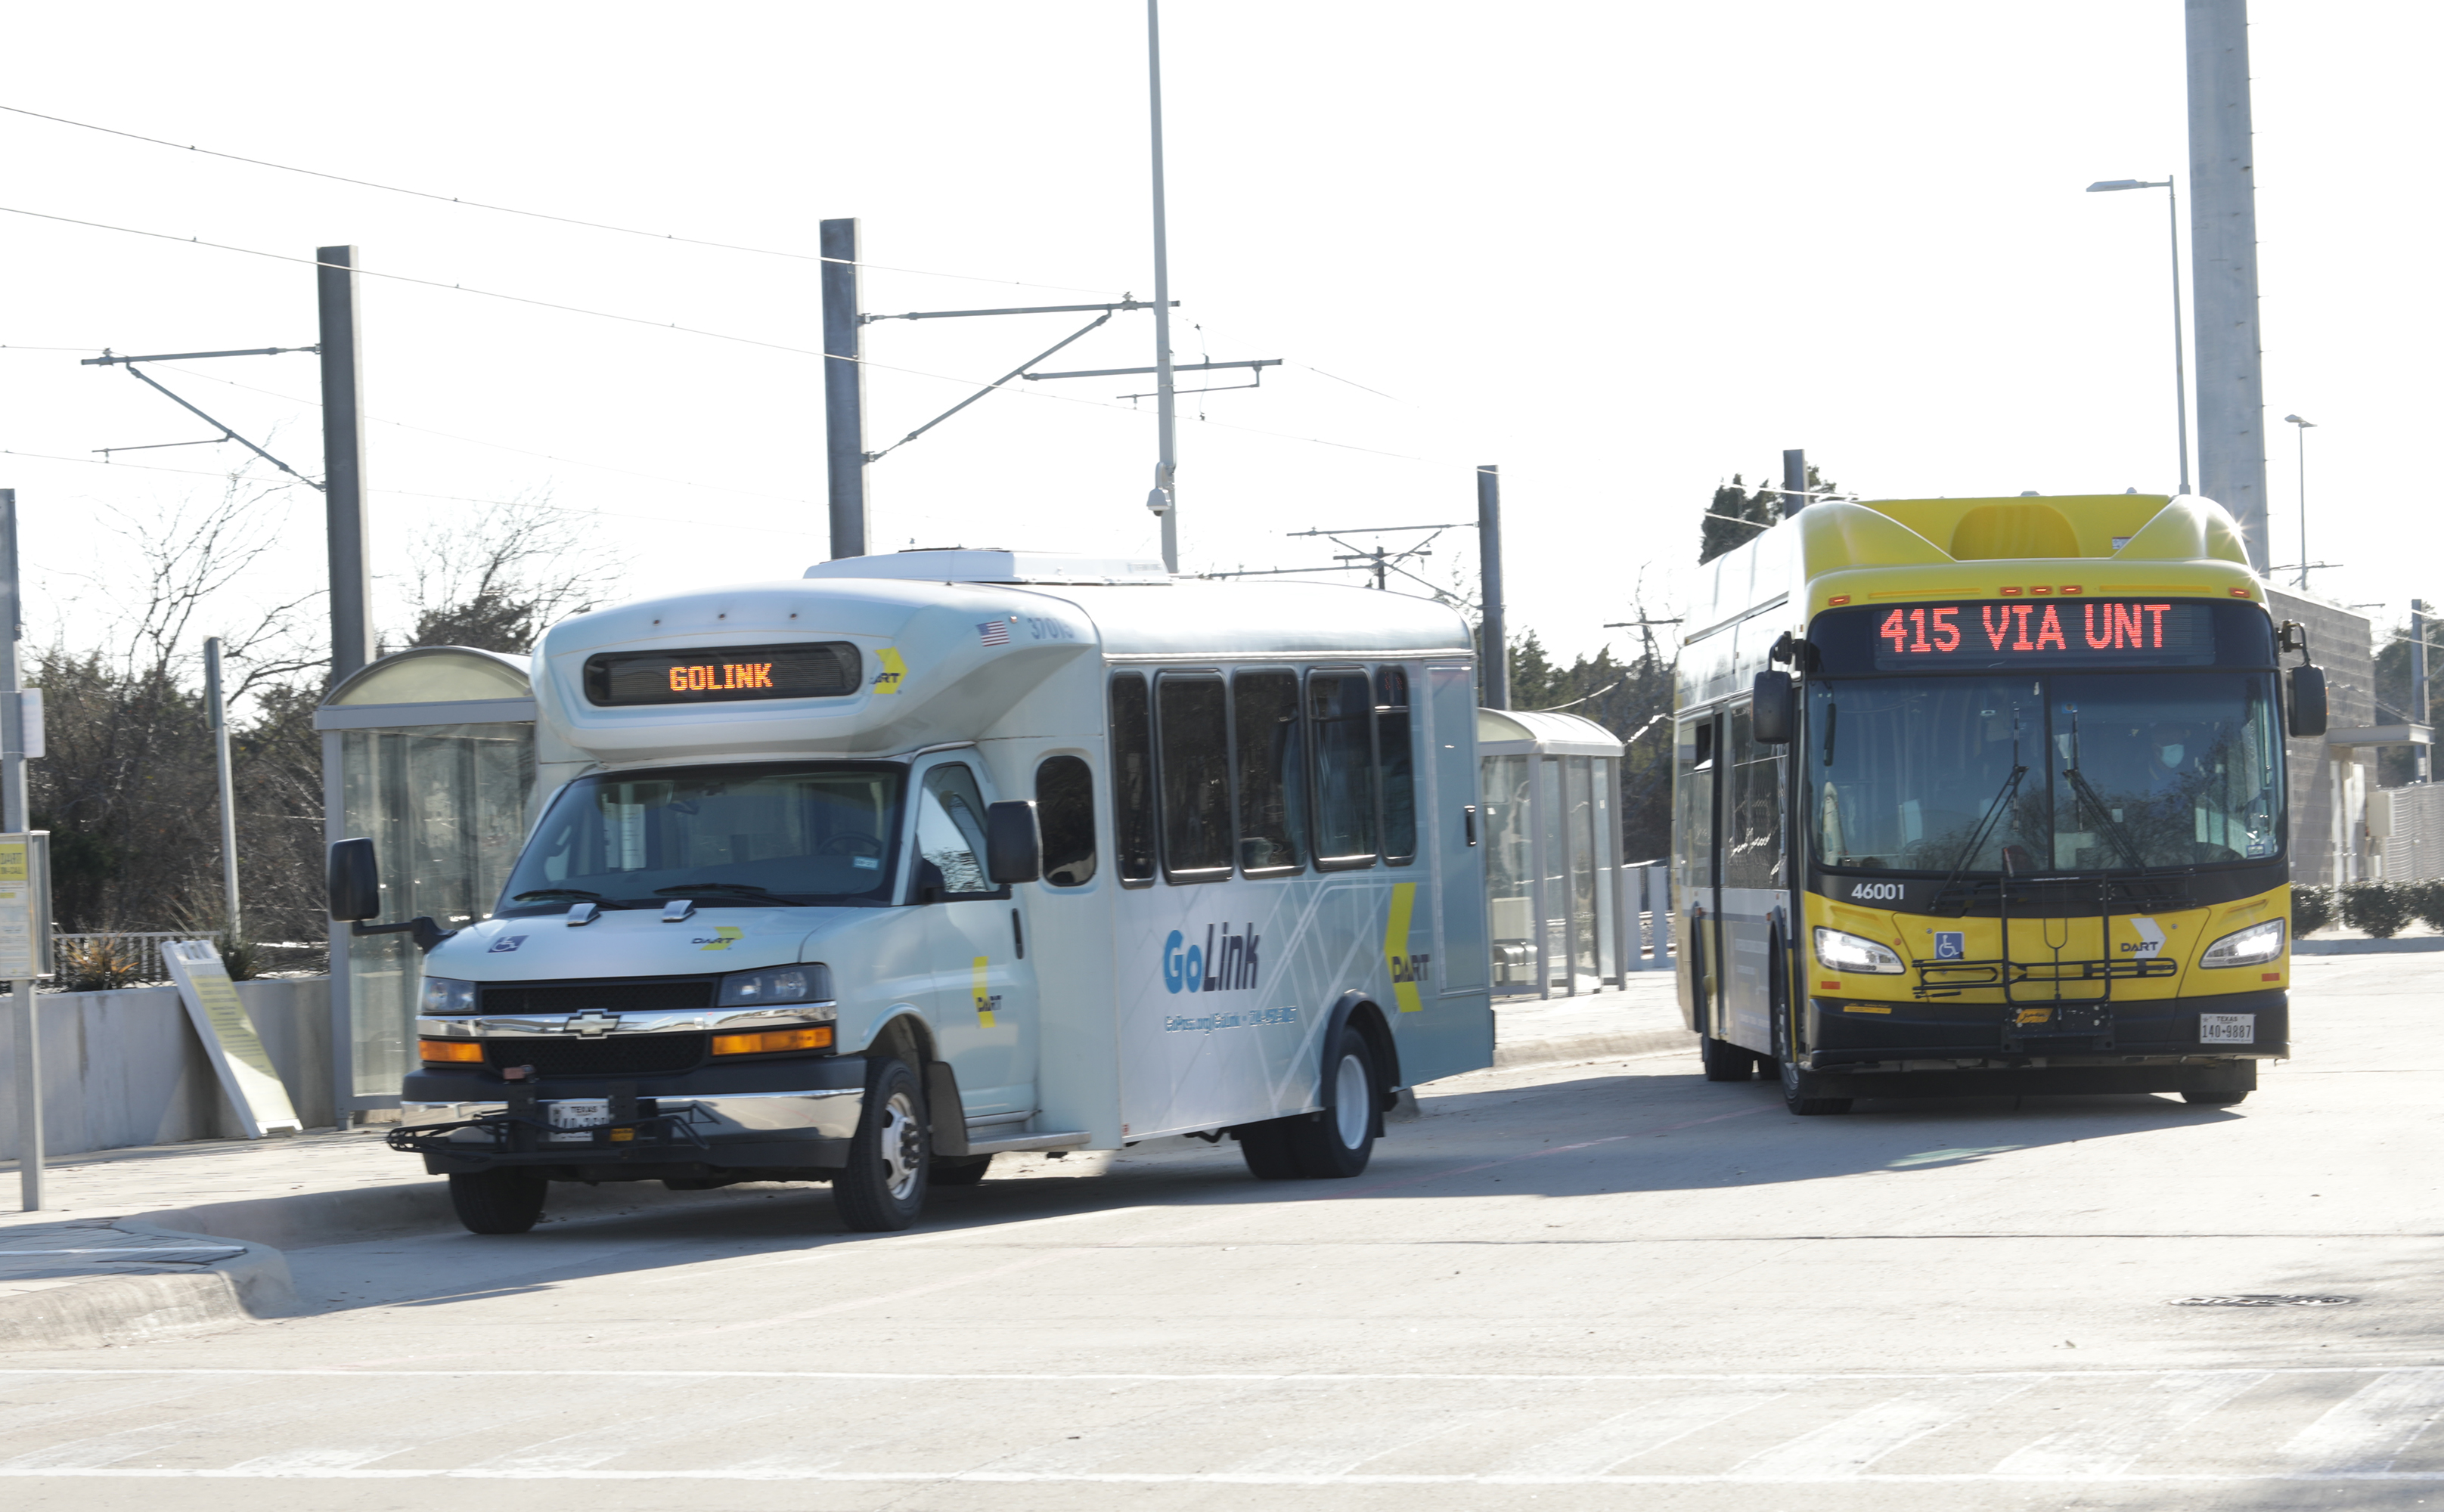 DART Bus and GoLink vehicles at UNT Dallas Station